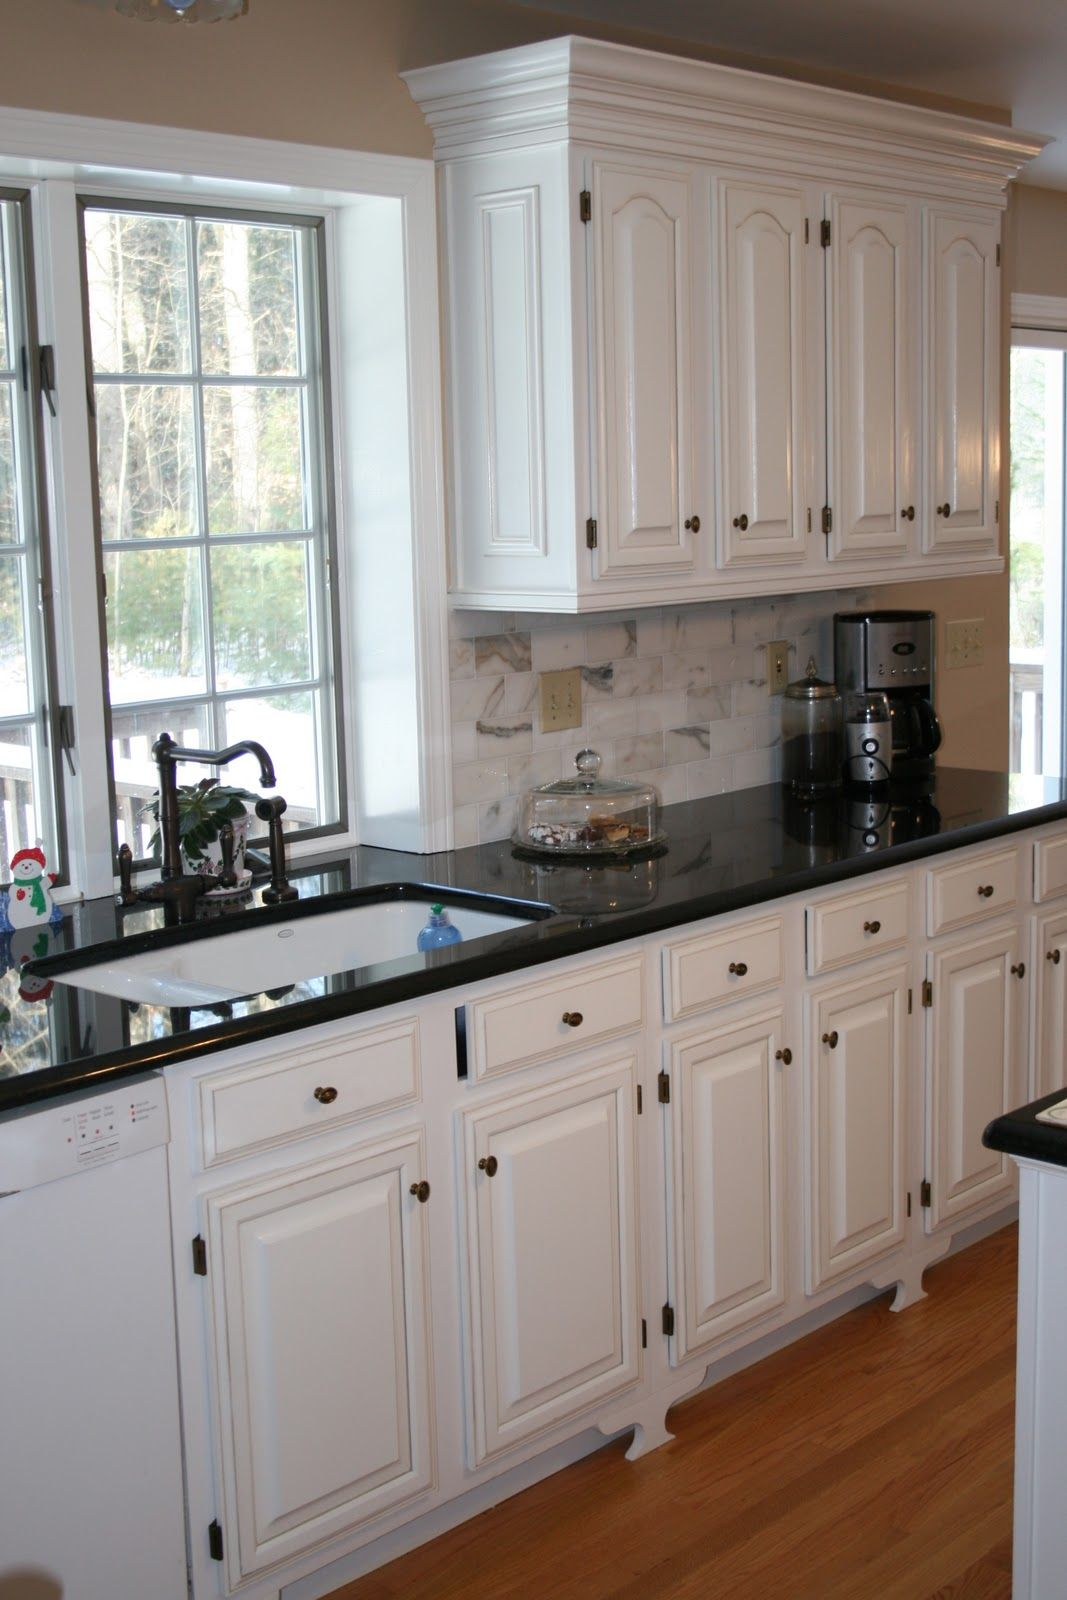 Great White Cabinets Black Countertops And That Faucet